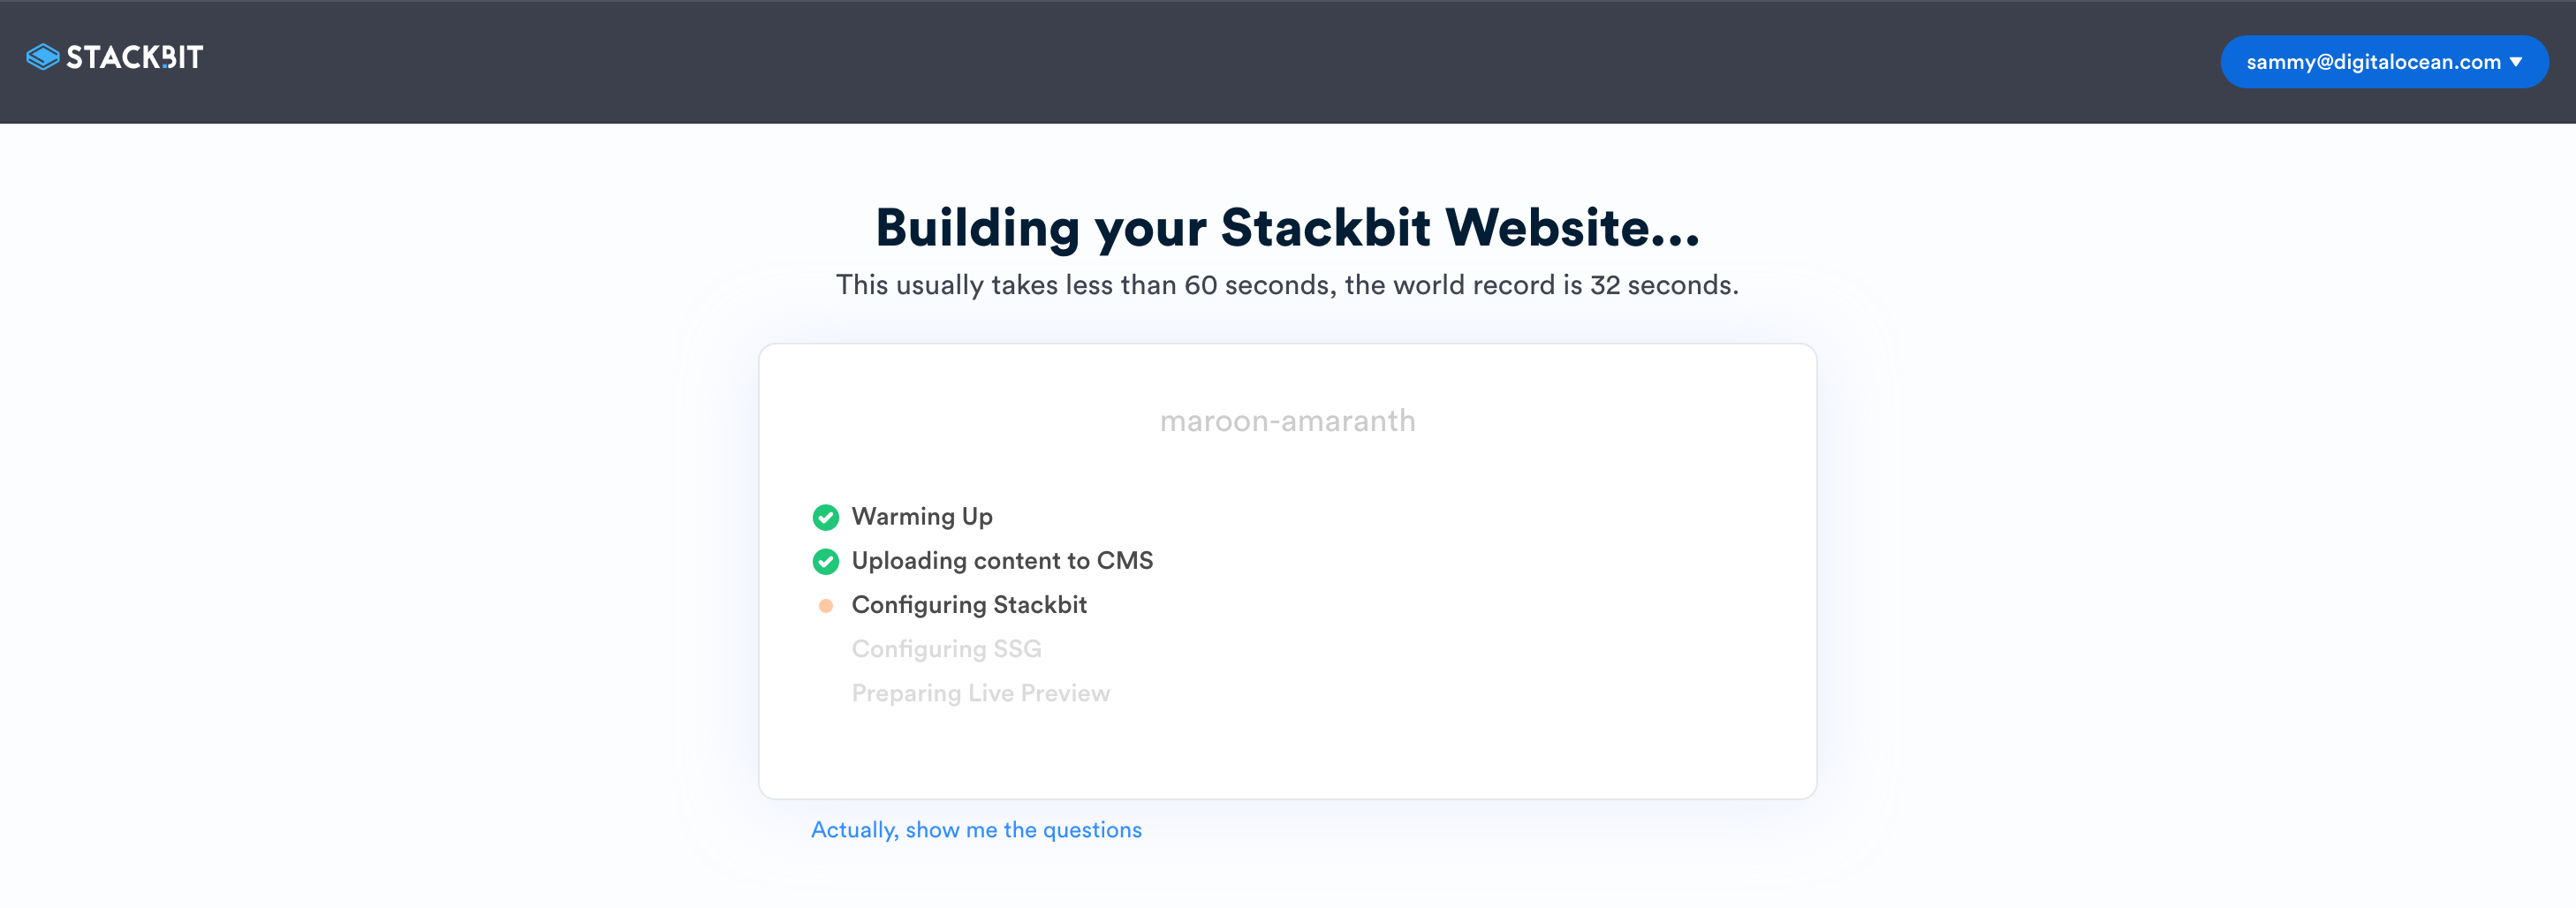 Create your new Stackbit site